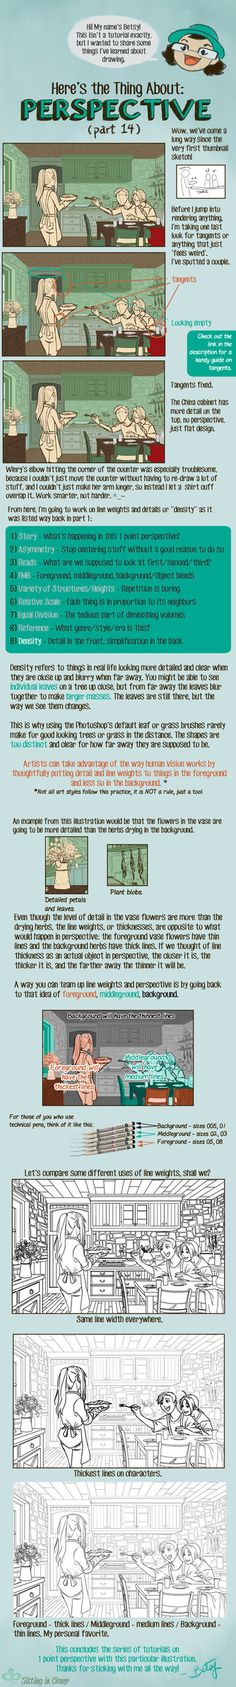 14 Here's the Thing About 1 Point Perspective by betsyillustration.deviantart.com on @DeviantArt